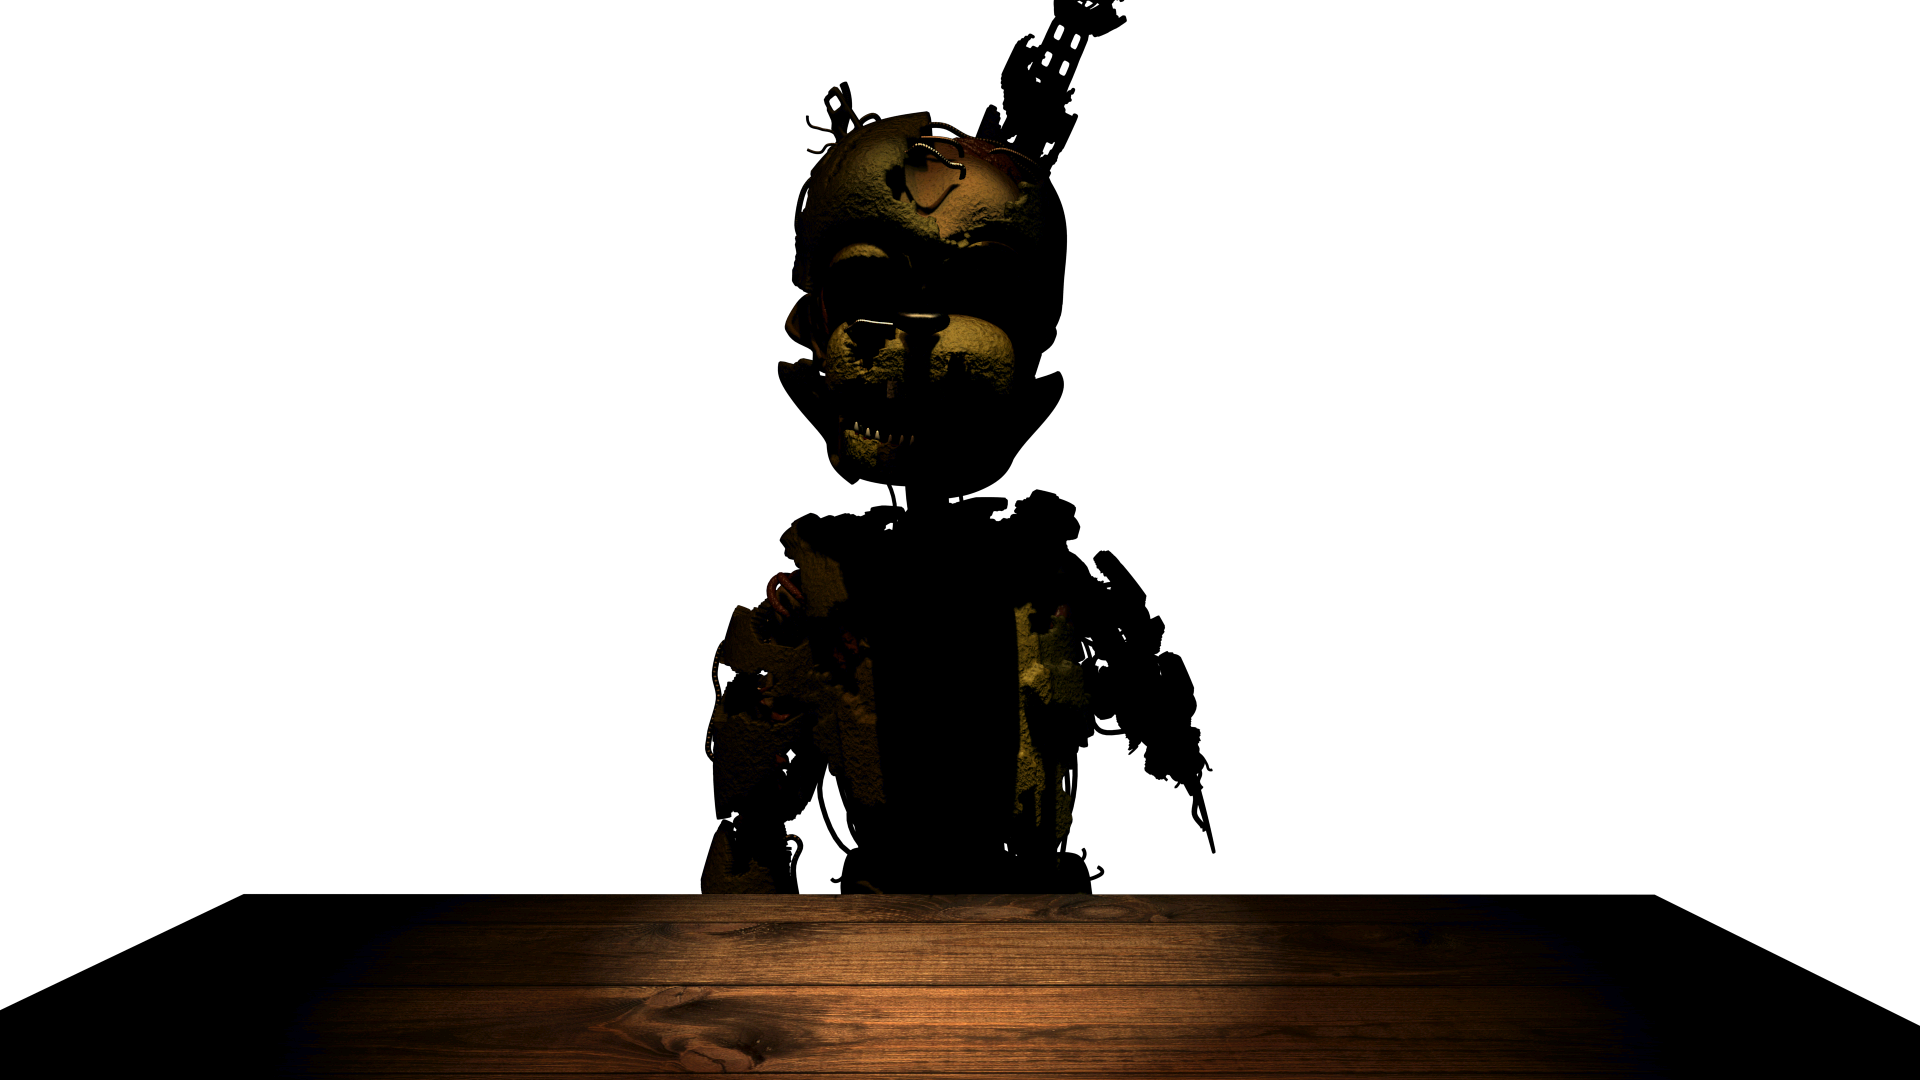 Image Wa2 Png Five Nights At Freddy S Wiki Fandom